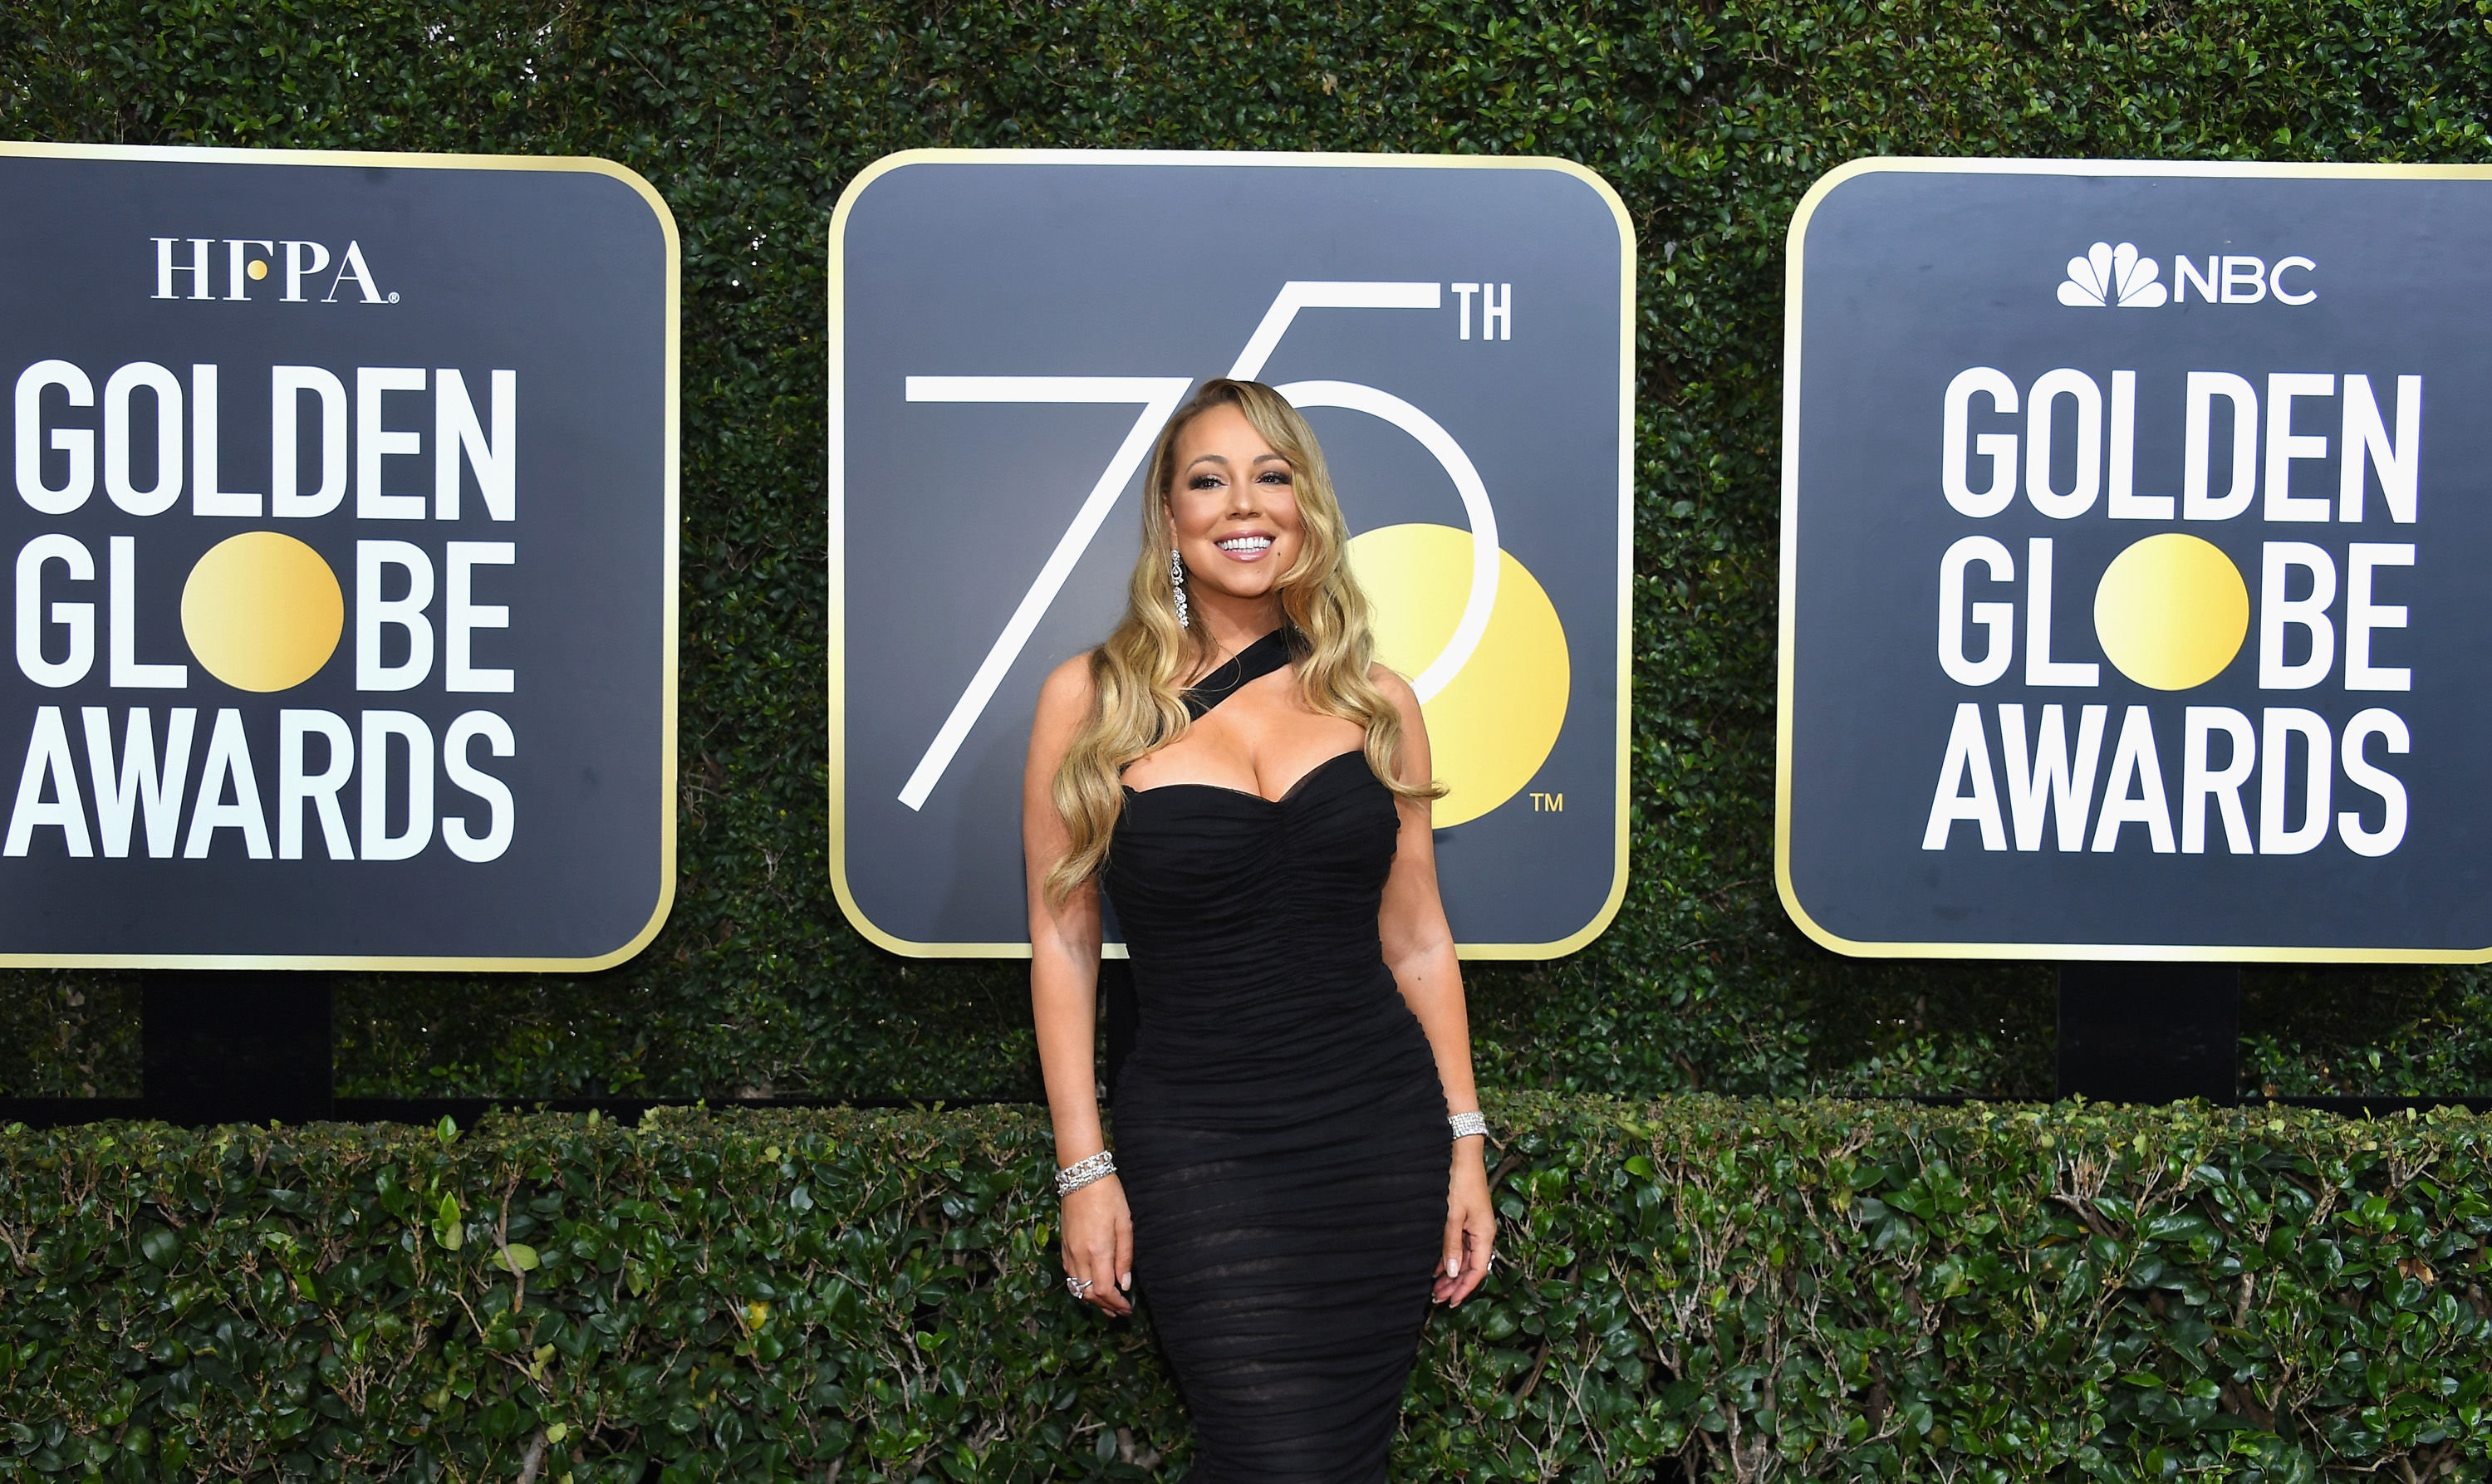 Singer Mariah Carey arrives to the 75th Annual Golden Globe Awards held at the Beverly Hilton Hotel on January 7, 2018.